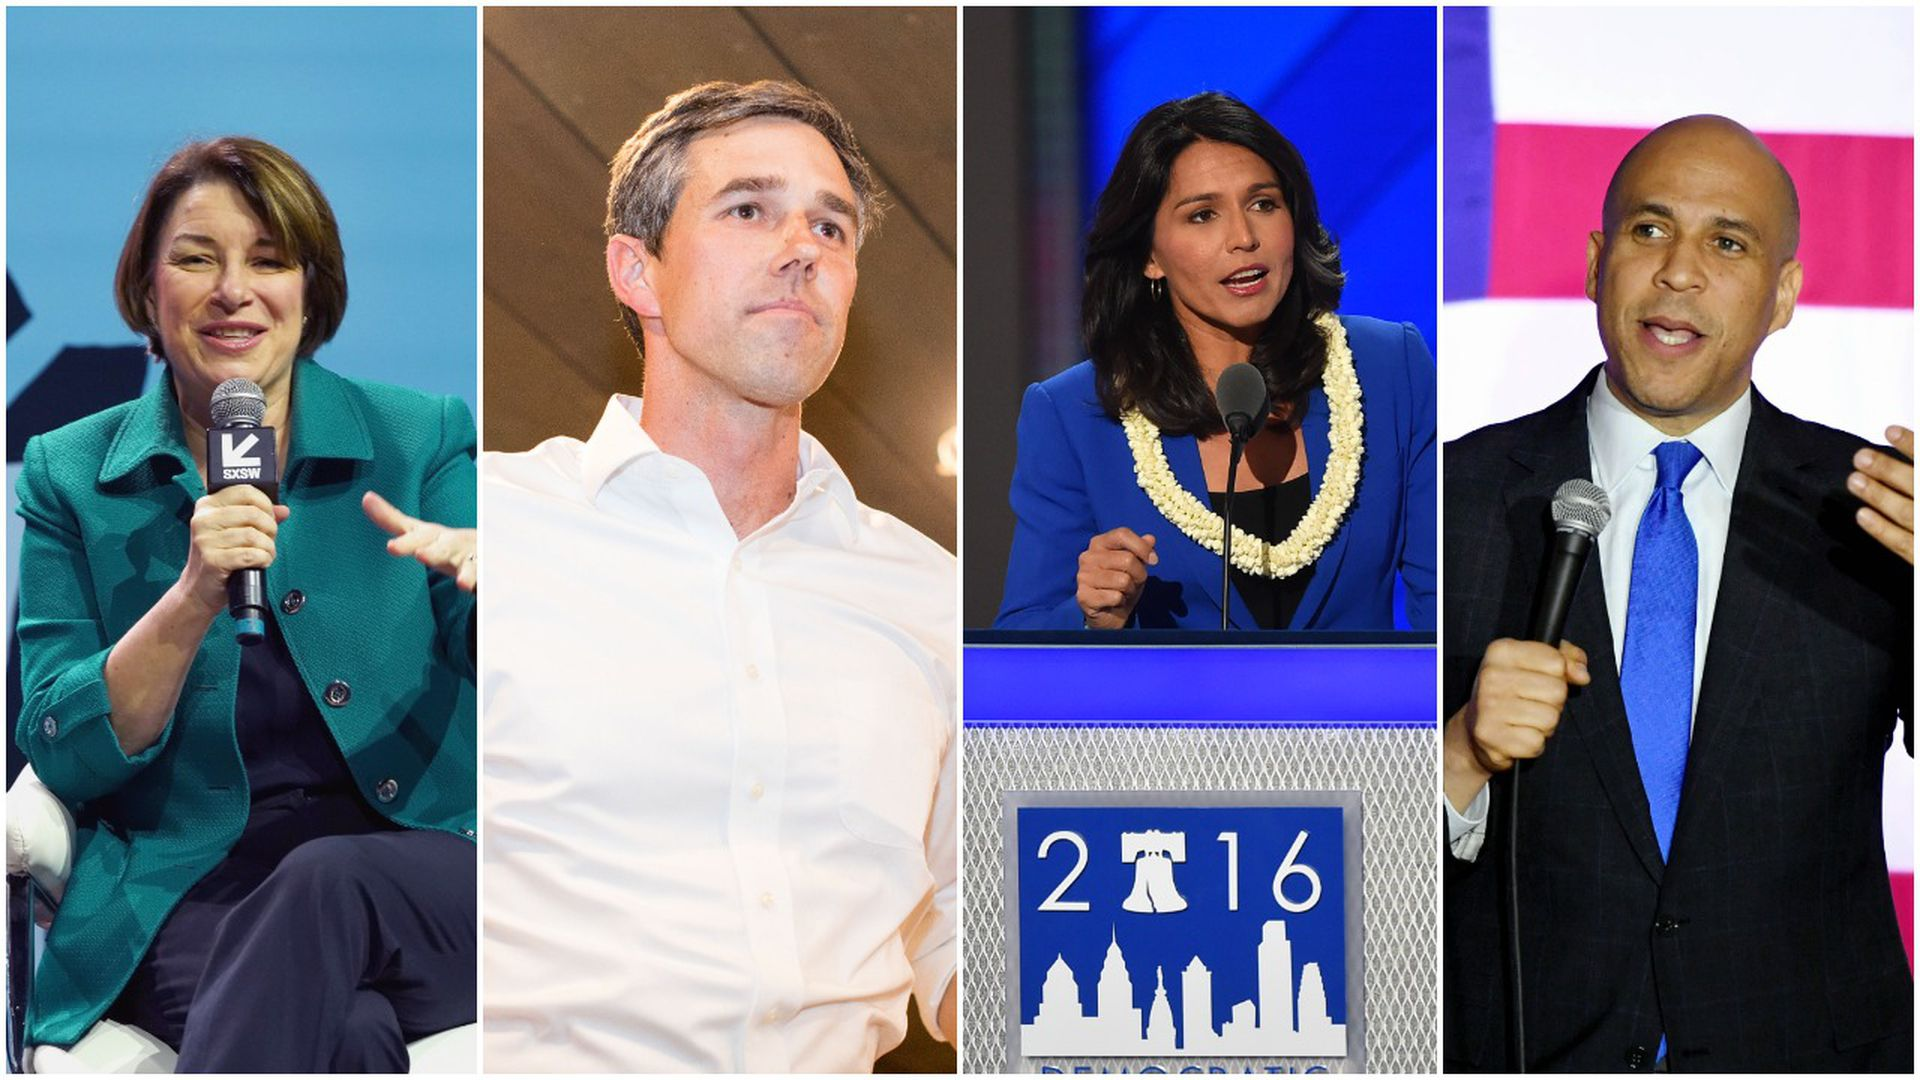 Debt-free college: Where the 2020 presidential candidates stand